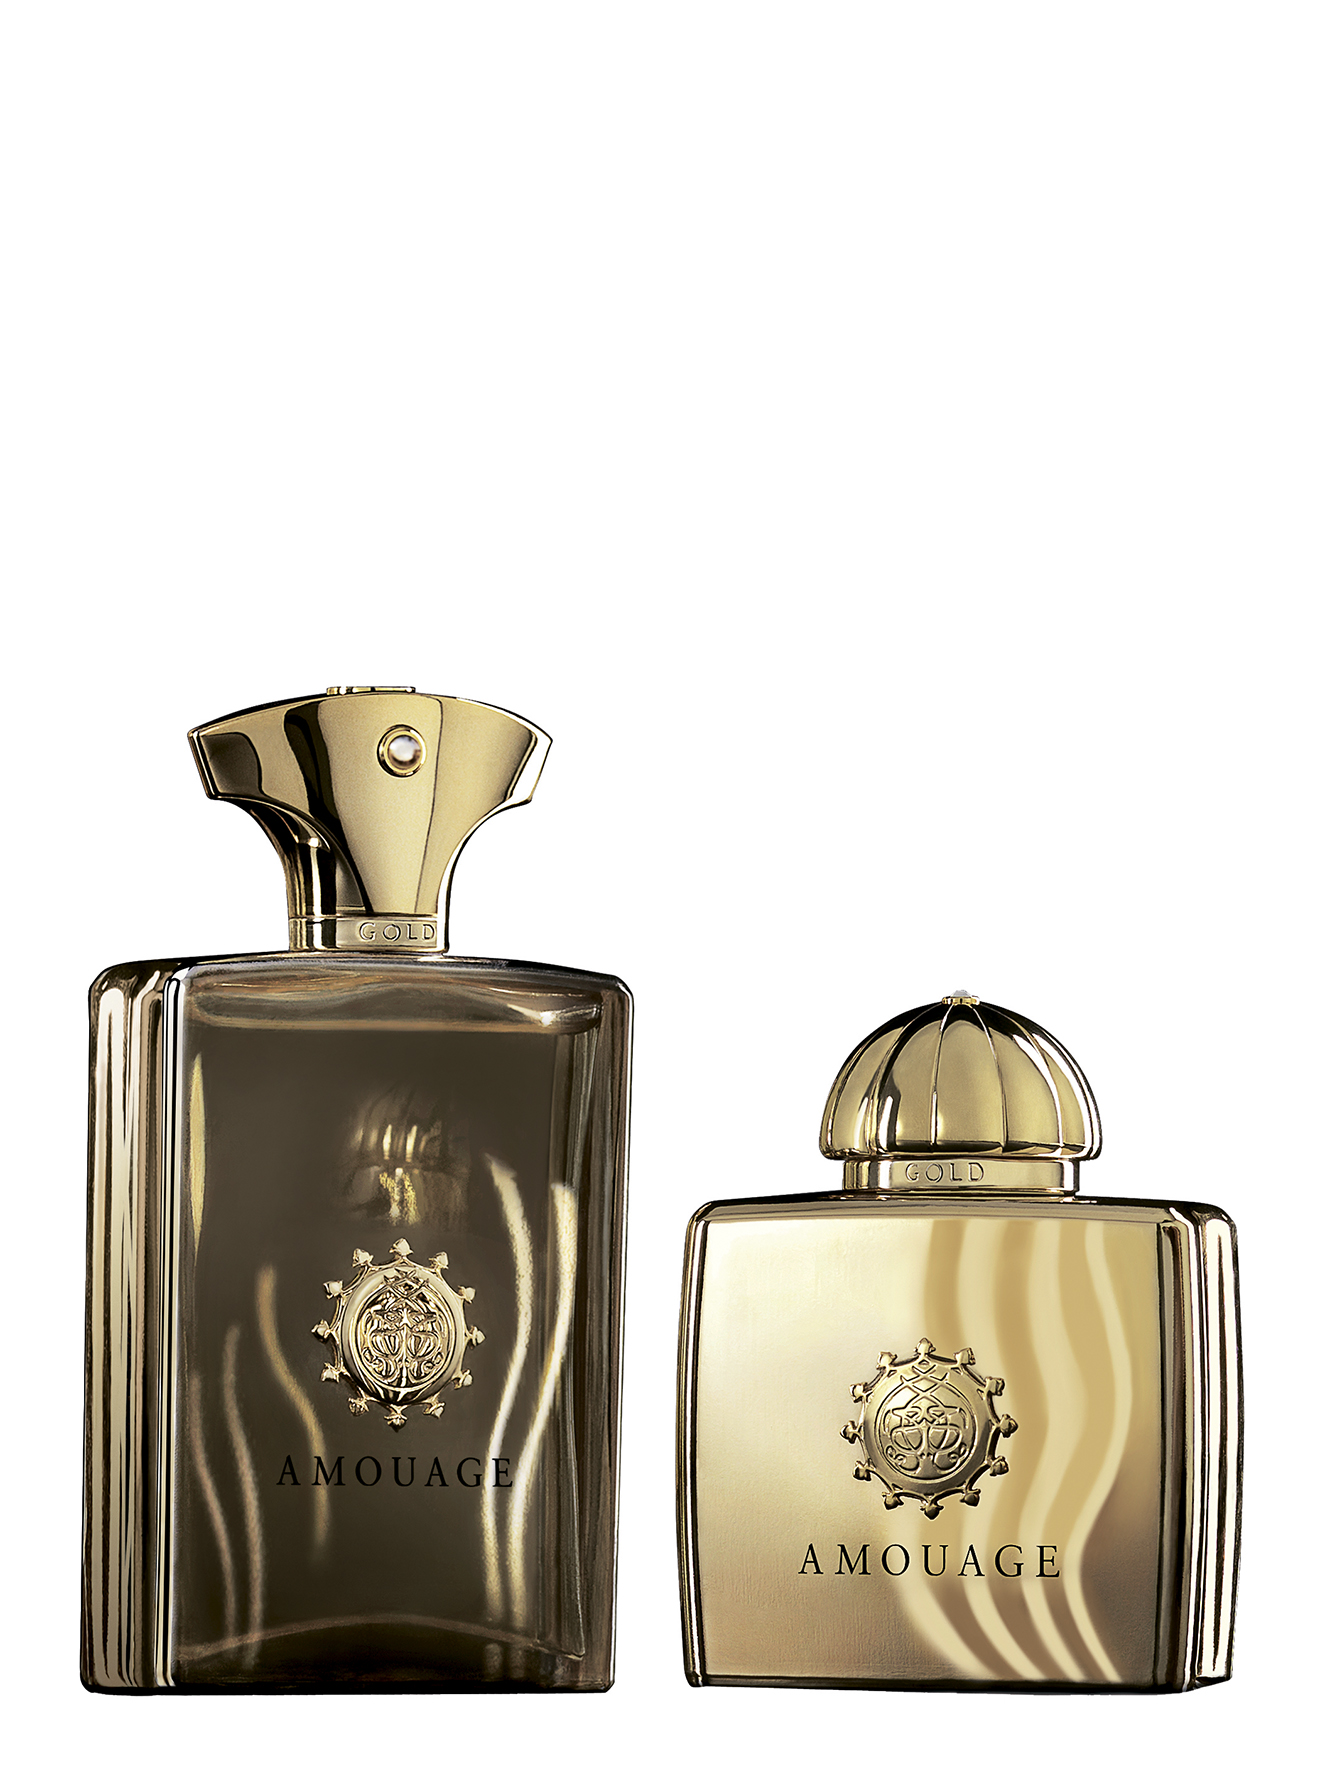 Парфюмерная вода 100 мл Amouage Gold pour Femme - Обтравка1